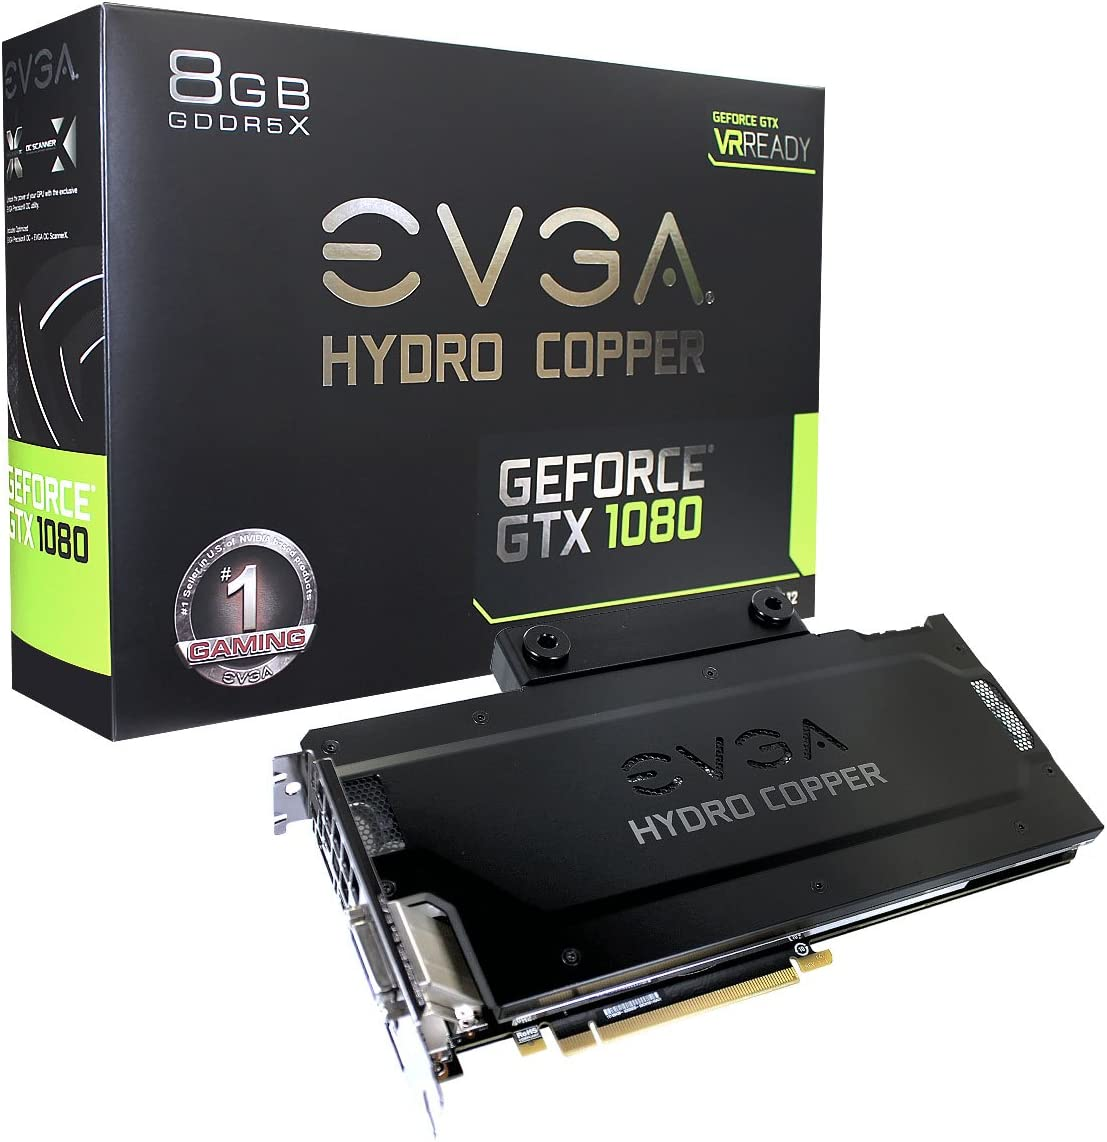 EVGA GeForce GTX 1080 FTW HYDRO COPPER GAMING, 8GB GDDR5X, RGB LED, HYDRO COPPER Waterblock, 10 Power Phases, Double BIOS DX12 OSD Support (PXOC) Graphics Card 08G-P4-6299-KR